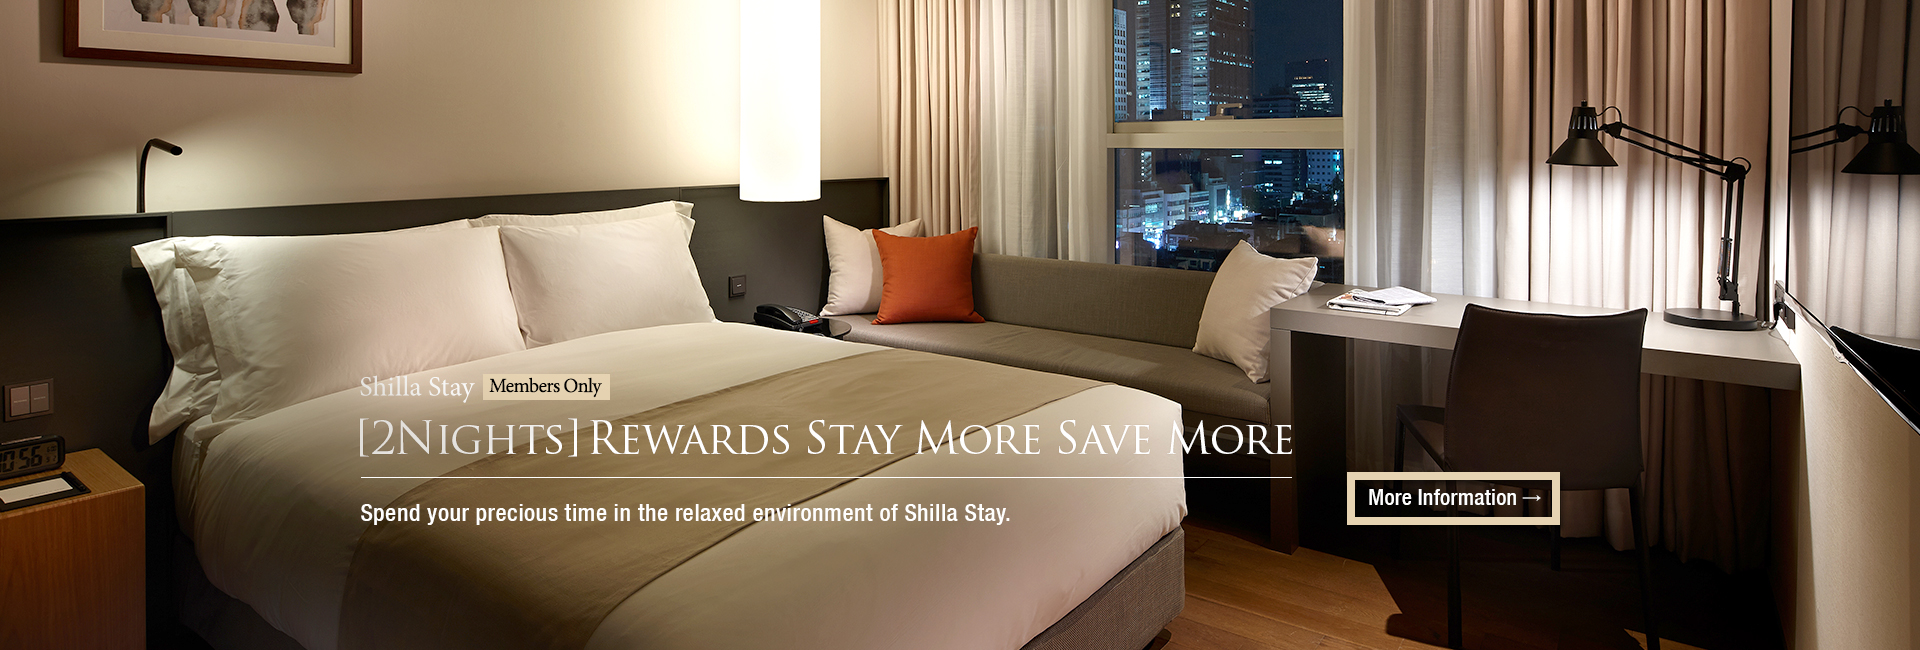 Shilla Stay / Rewards Stay More Save More